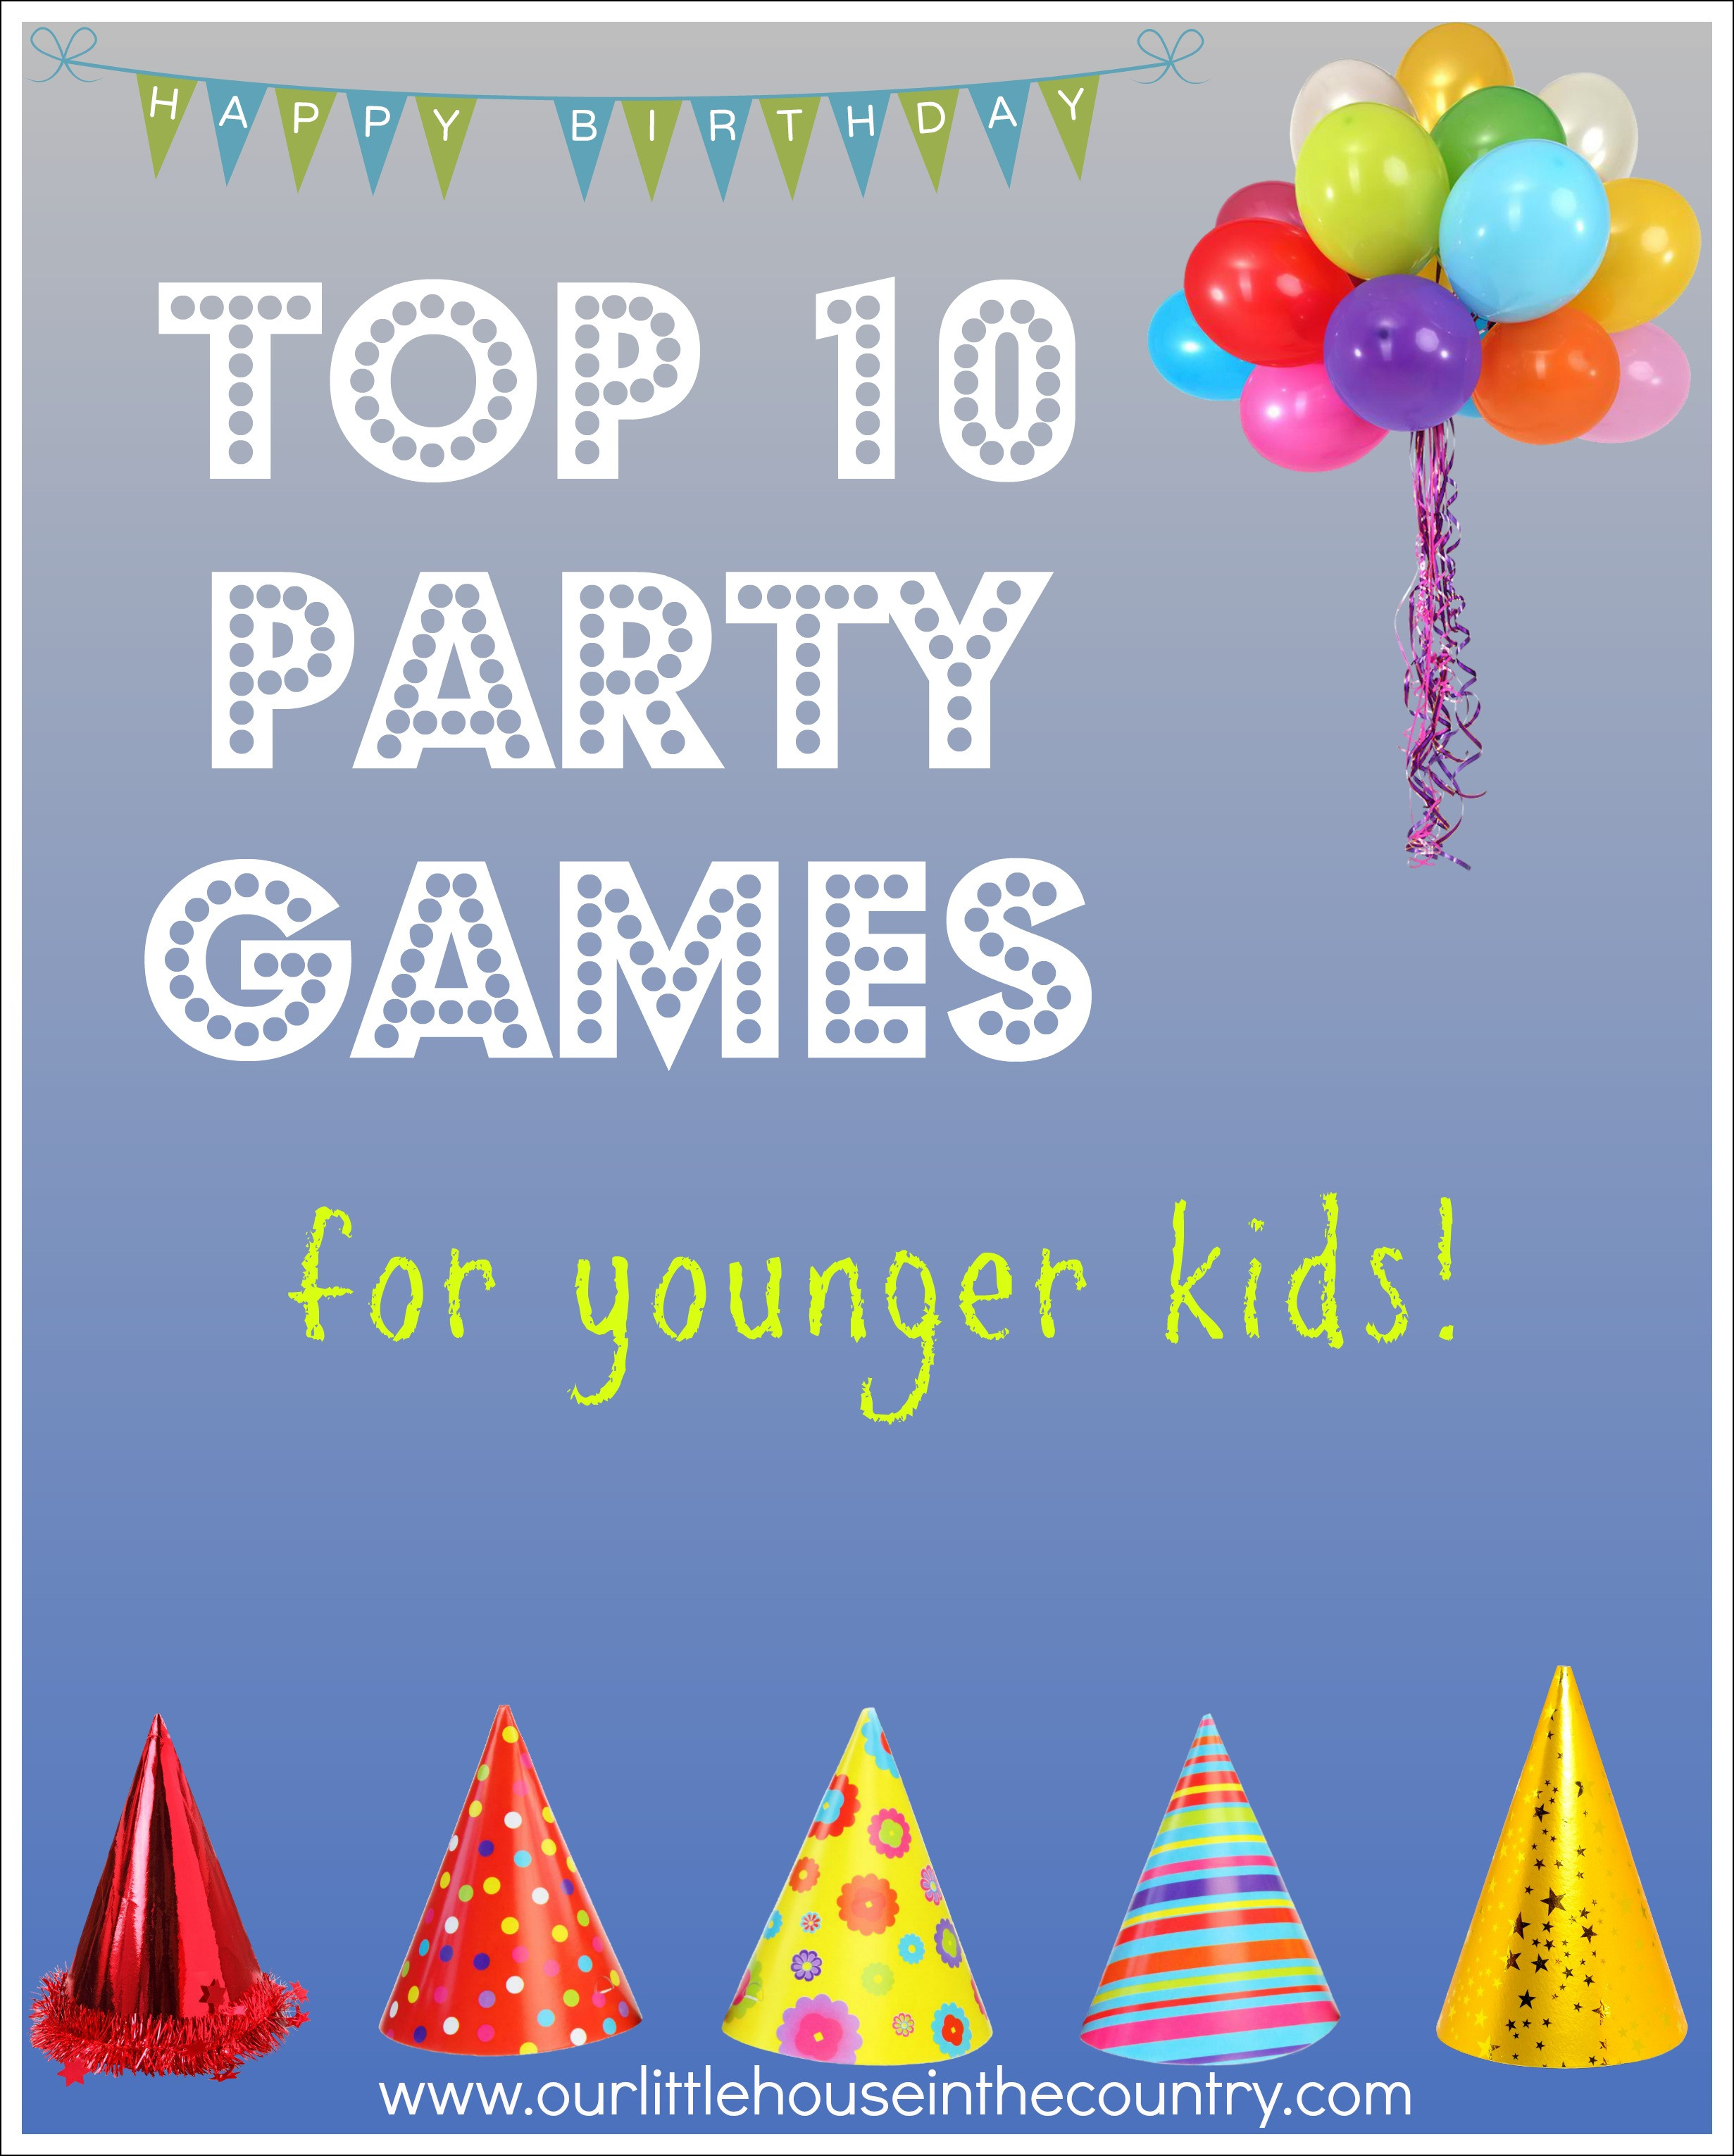 Best Birthday Party Games  Top 10 Party Games – for younger kids